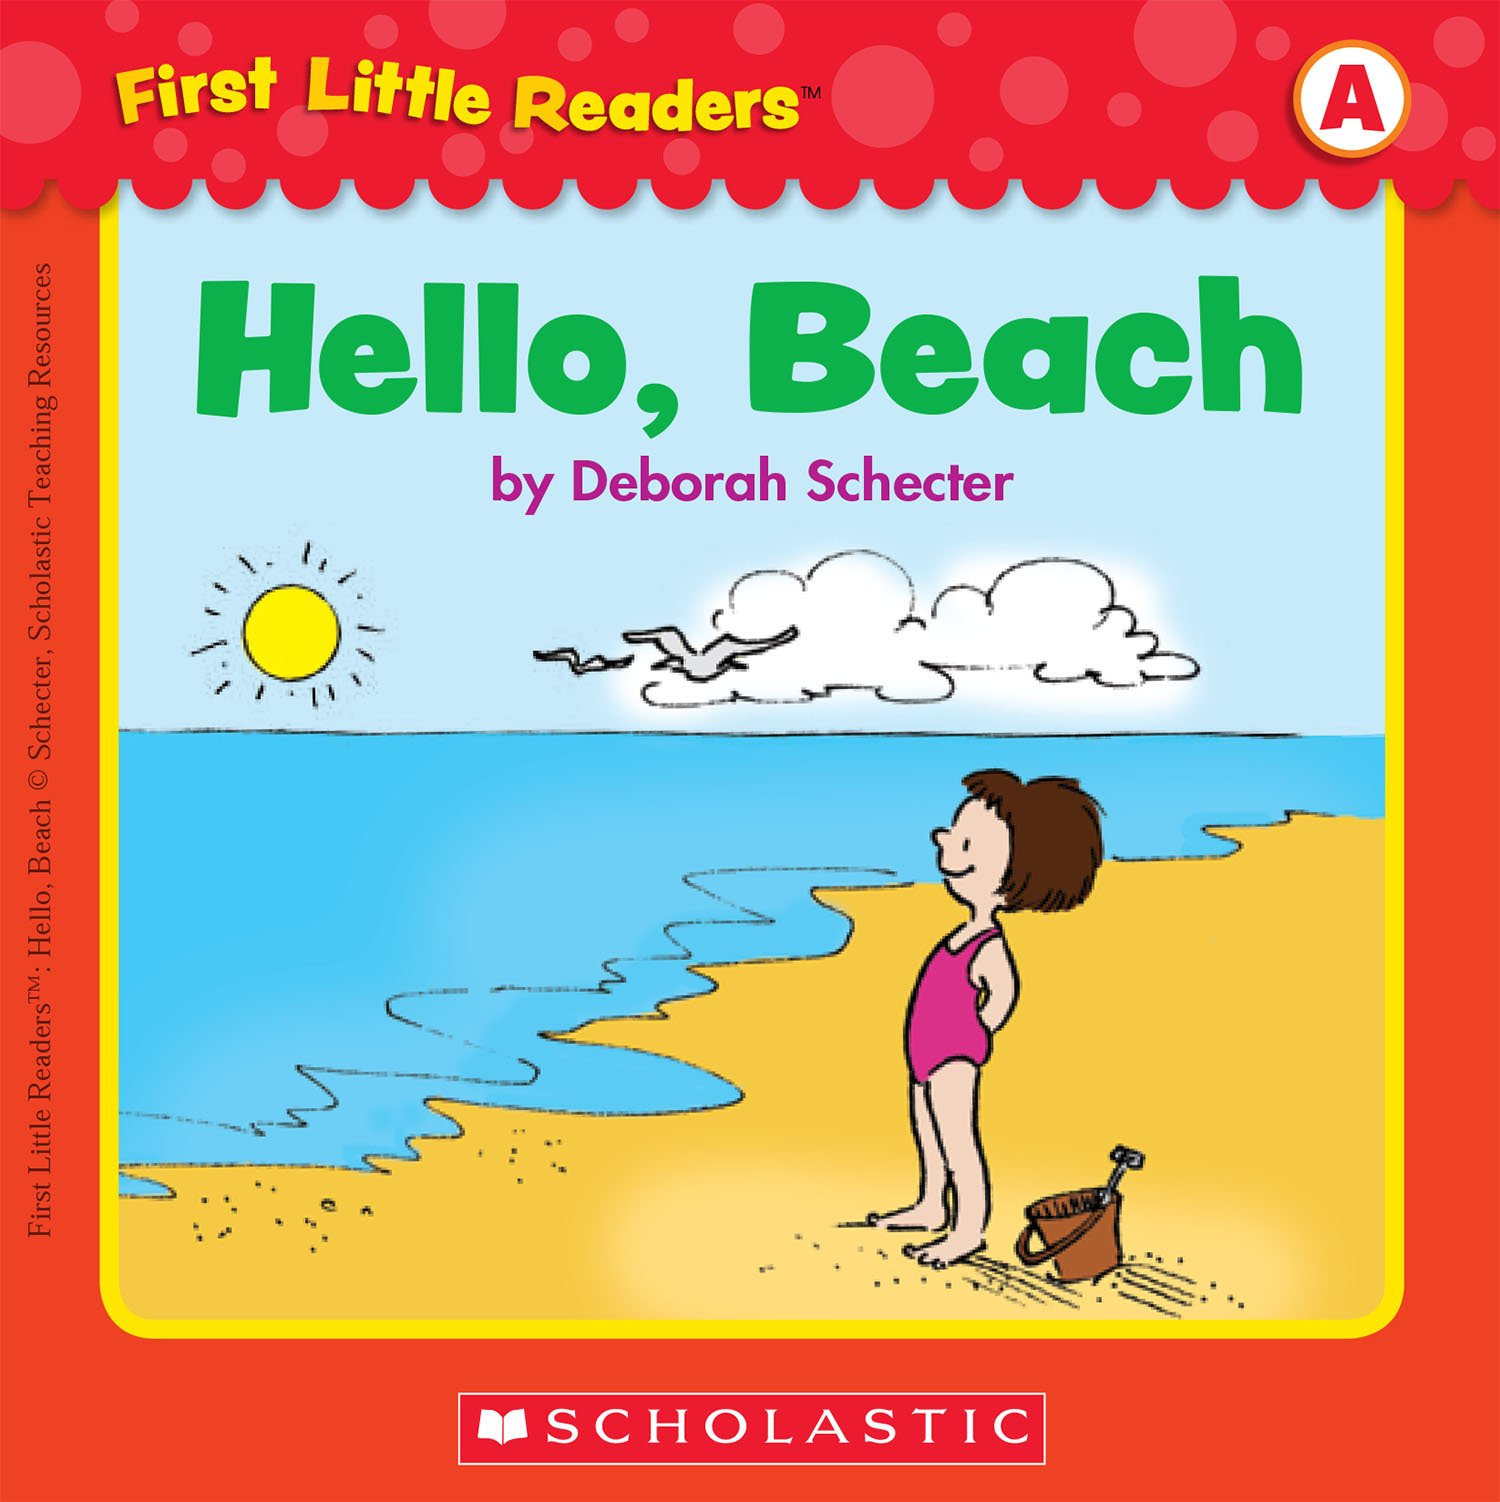 Scholastic First Little Readers: Guided Reading Level A, (5 Copies Each of 20 Titles) by Scholastic (Image #2)